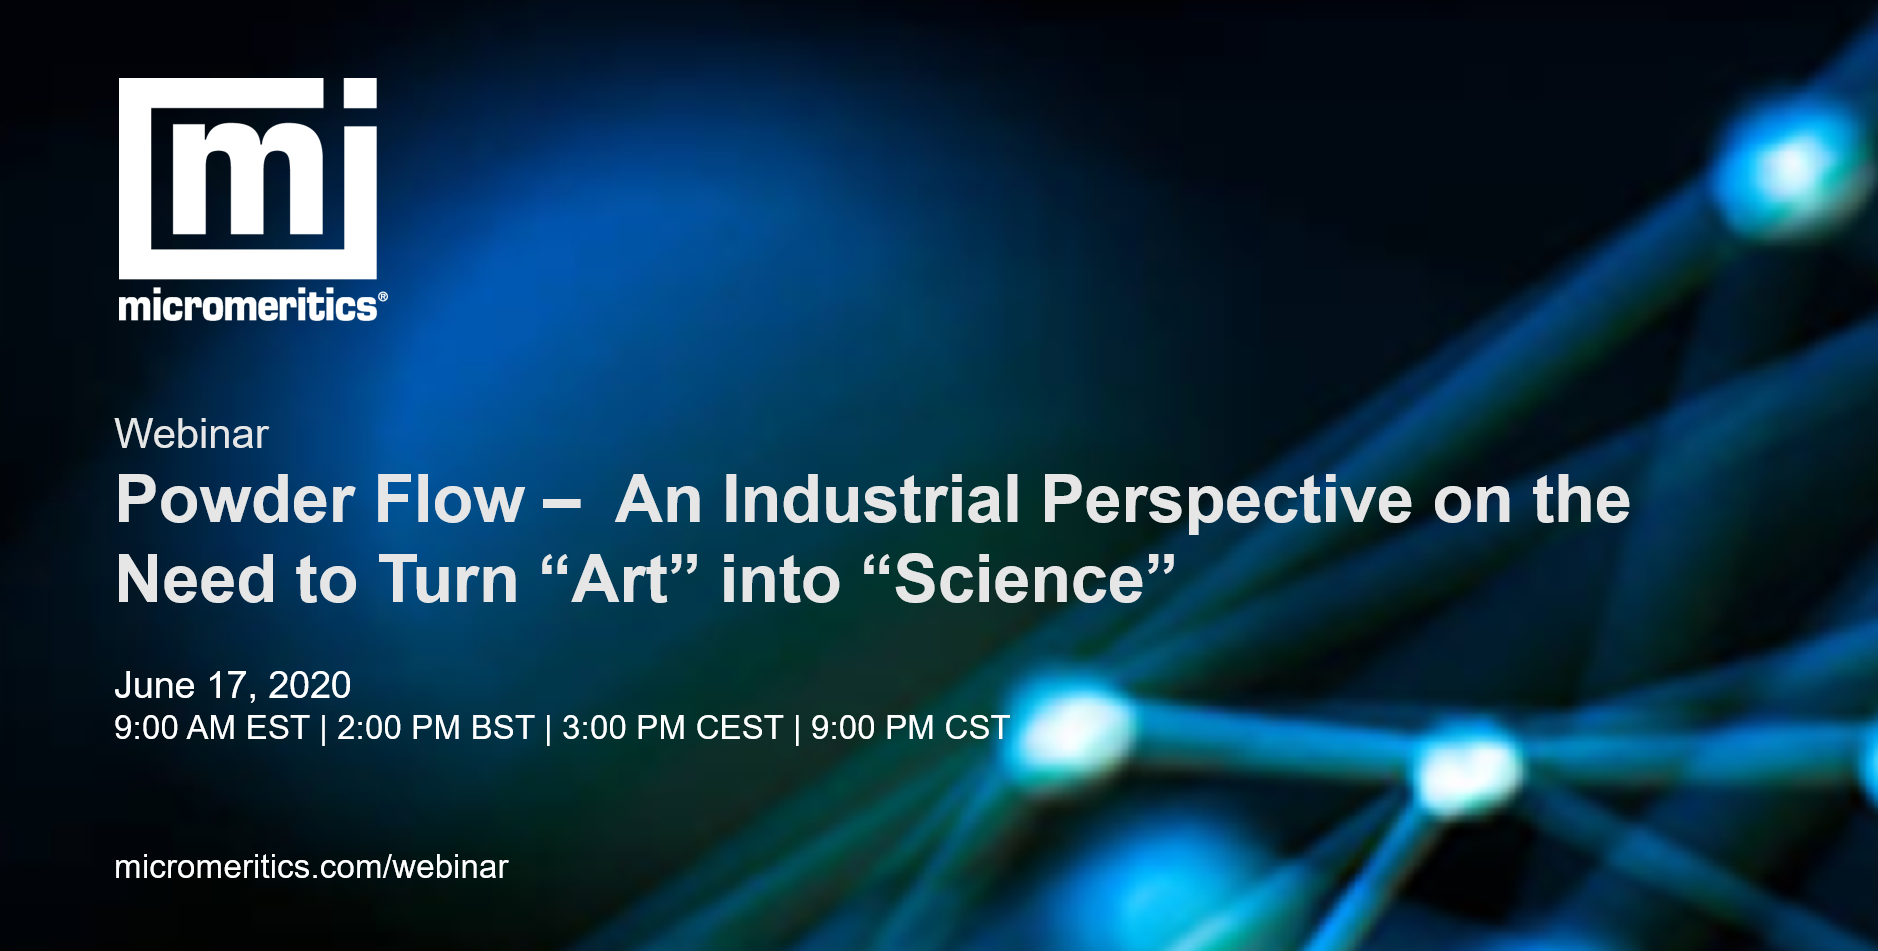 Powder flow webinar - an industrial perspective on the need to turn art into science